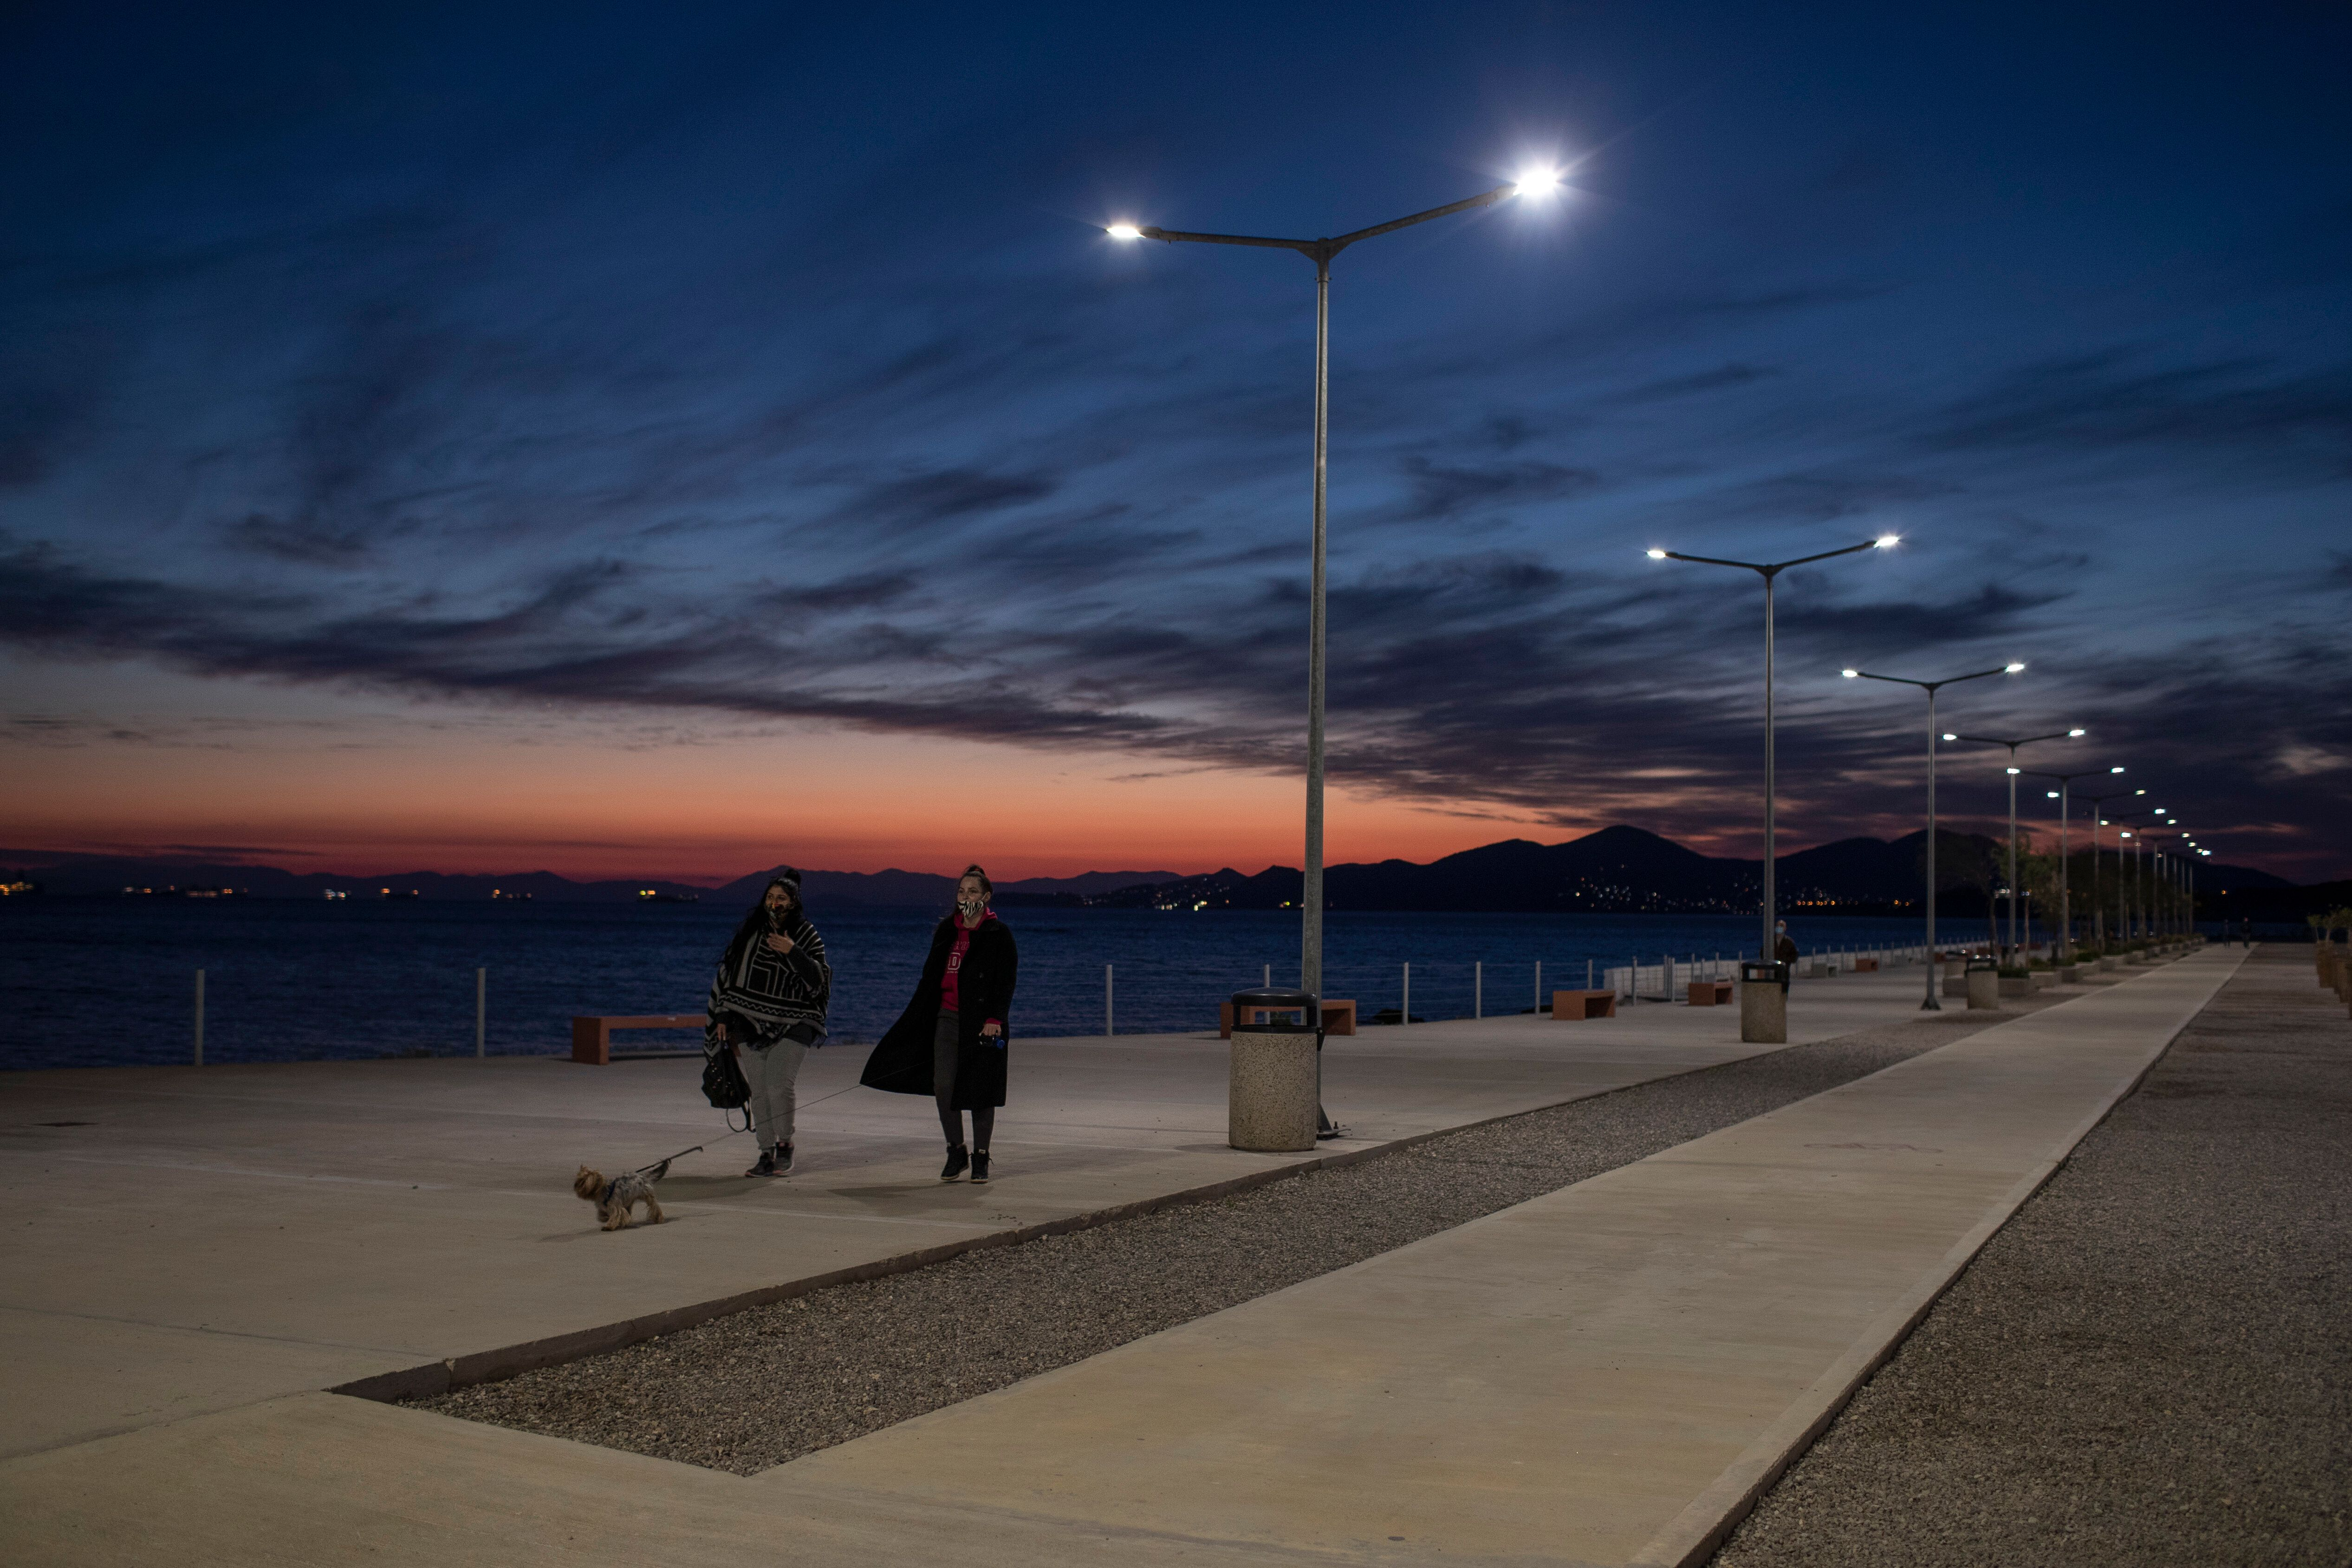 People walk by the seain Drapetsona suburb of Piraeus, near Athens, on Monday. A second nationwide lockdown is in place until